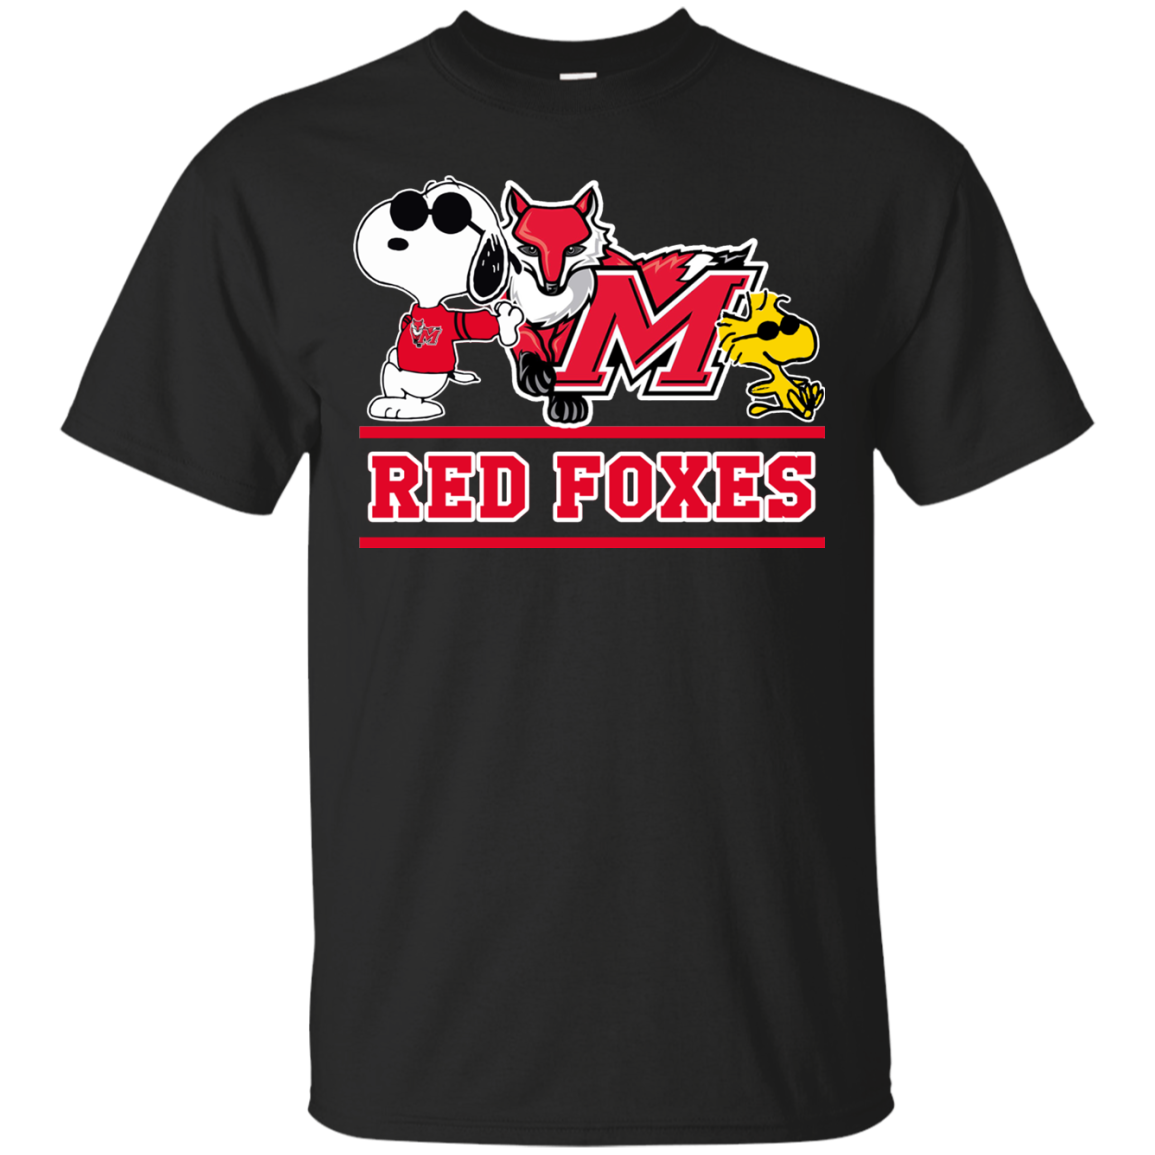 NCAA Marist Red Foxes T-Shirt V1